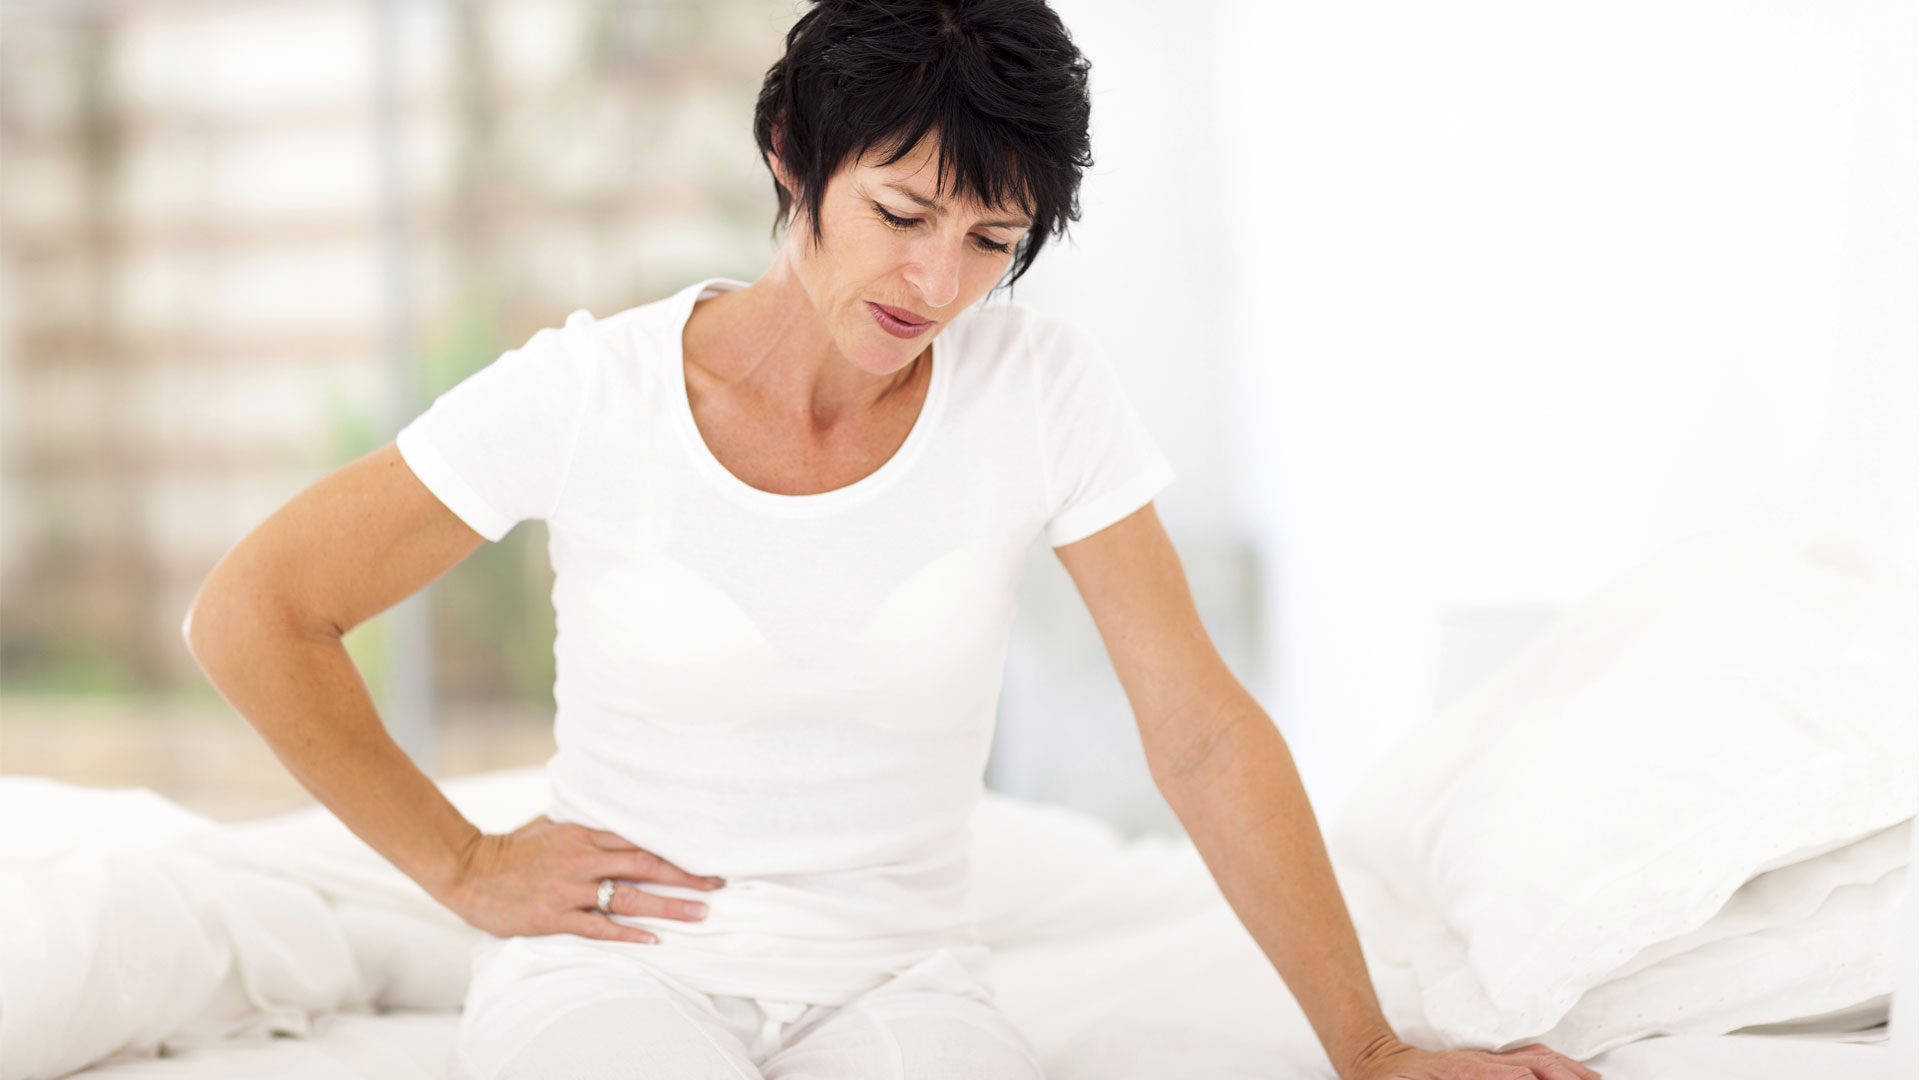 Mature woman having aches and pain